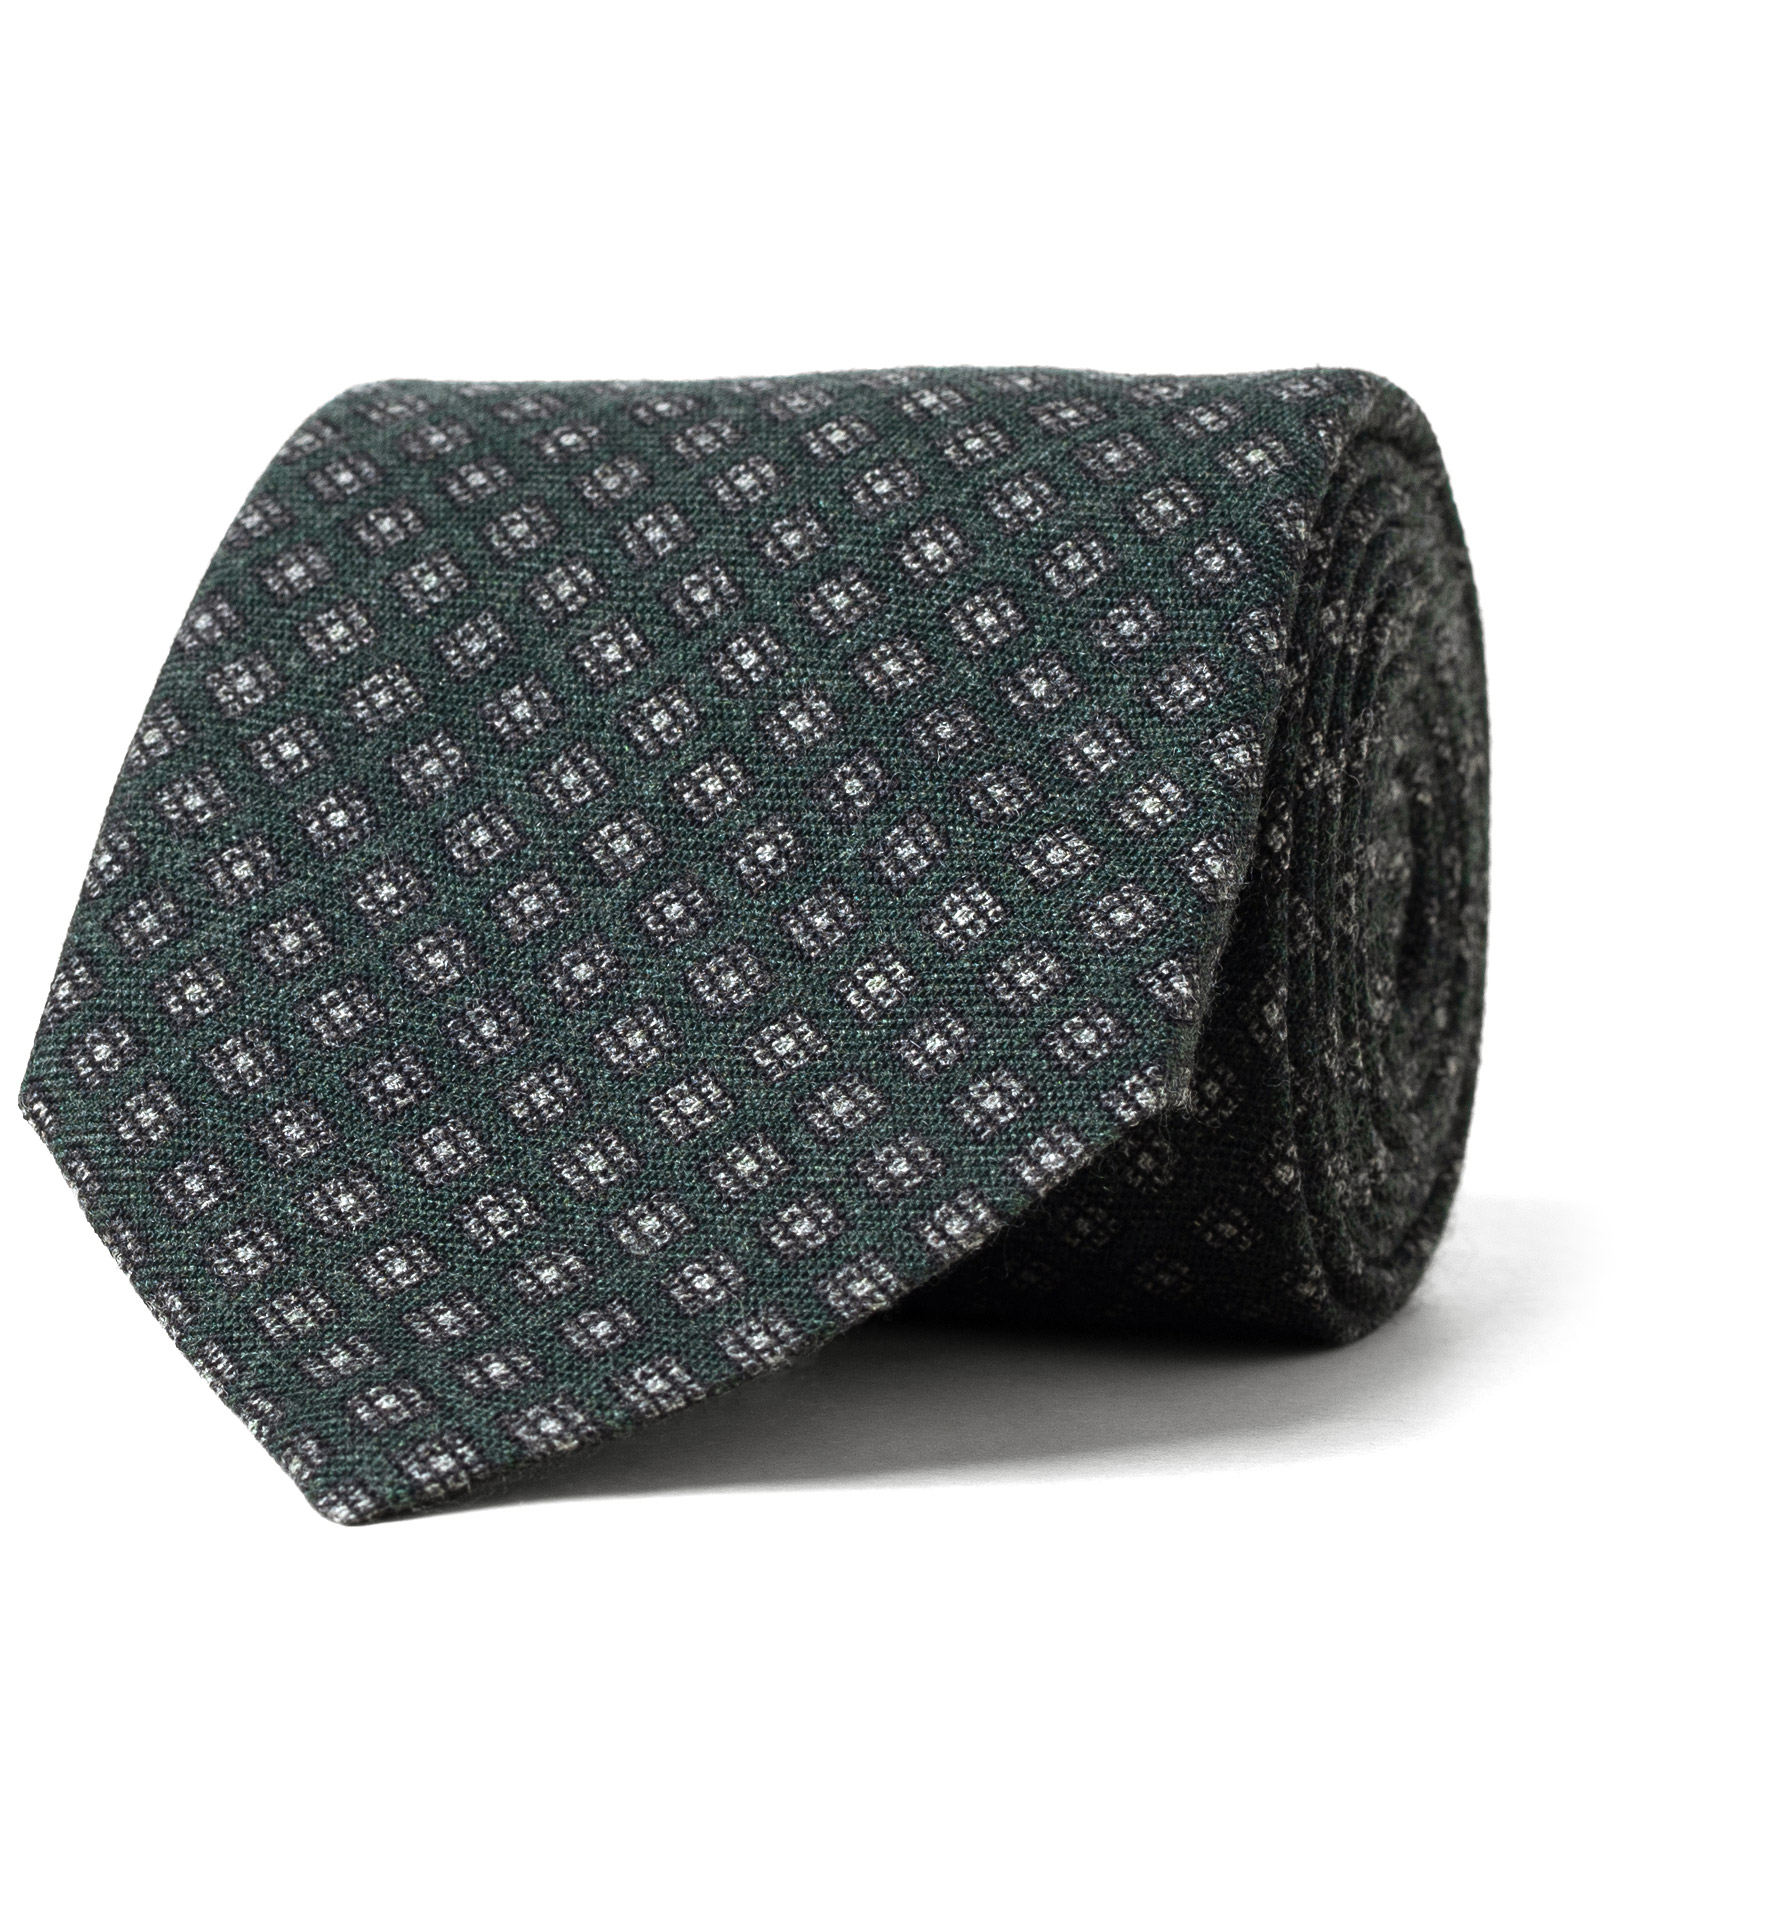 Zoom Image of Forest and Grey Foulard Wool Tie